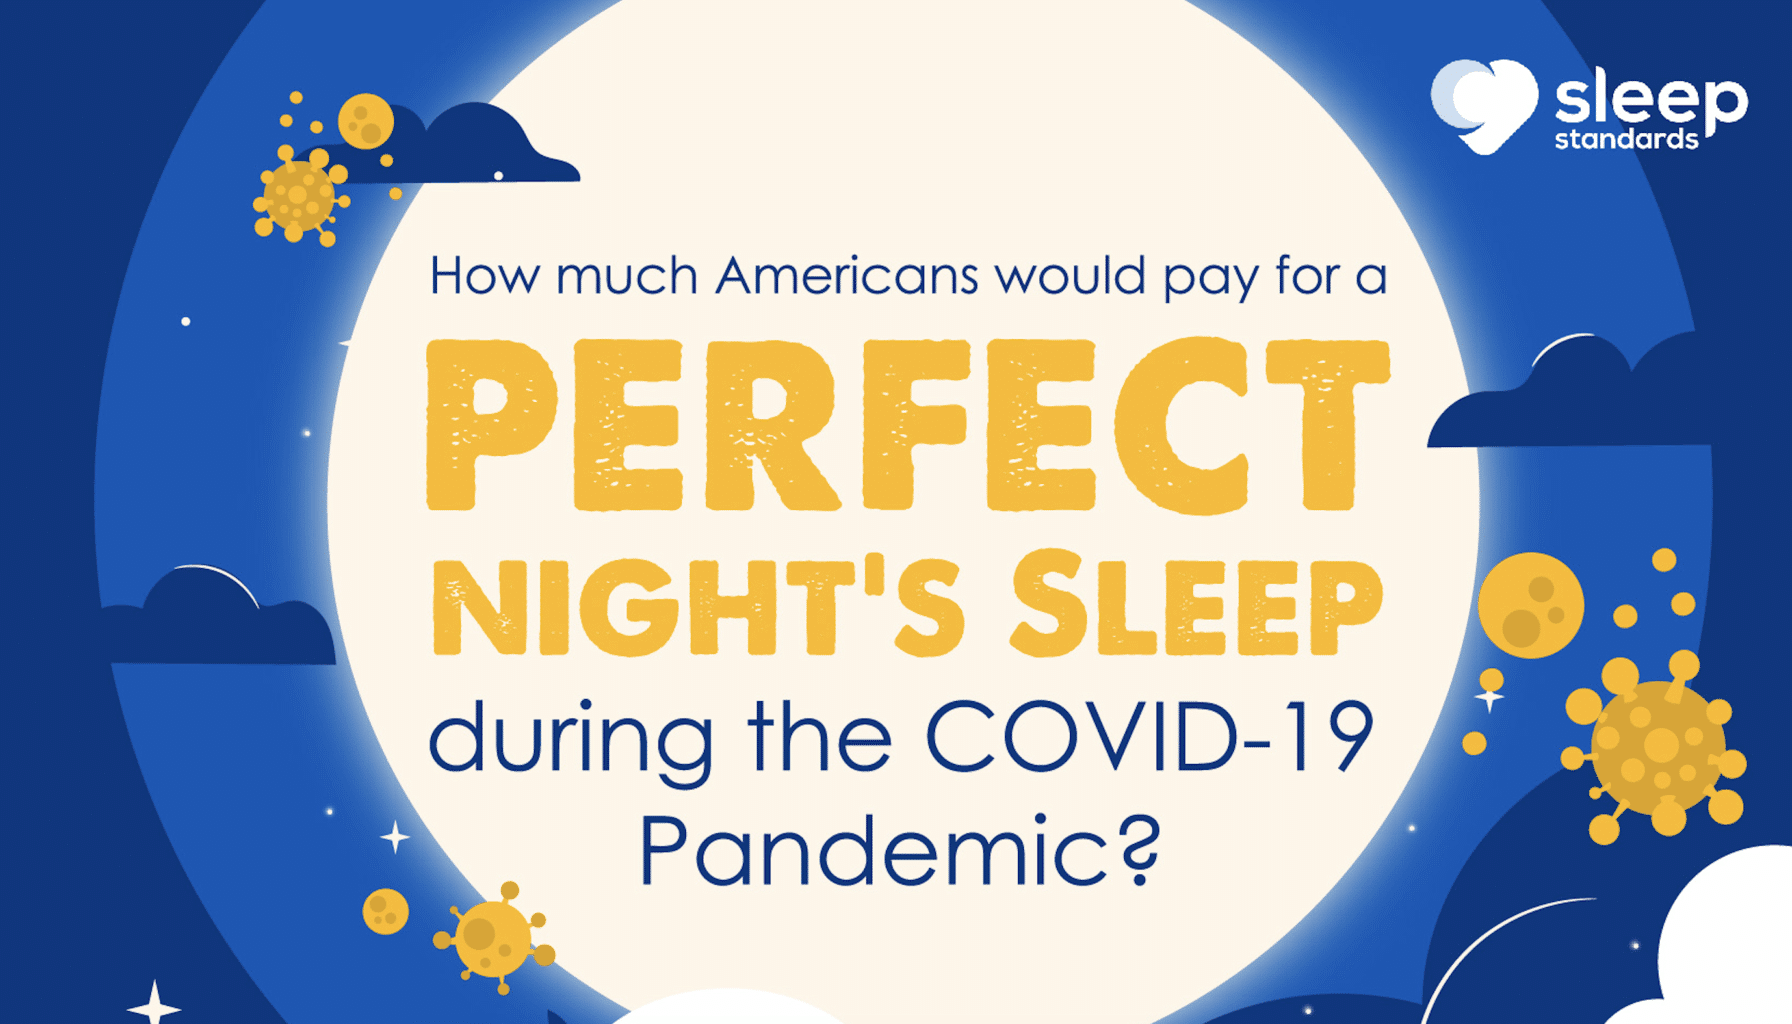 How much Americans would pay for a perfect night's sleep during the COVID-19 Pandemic?